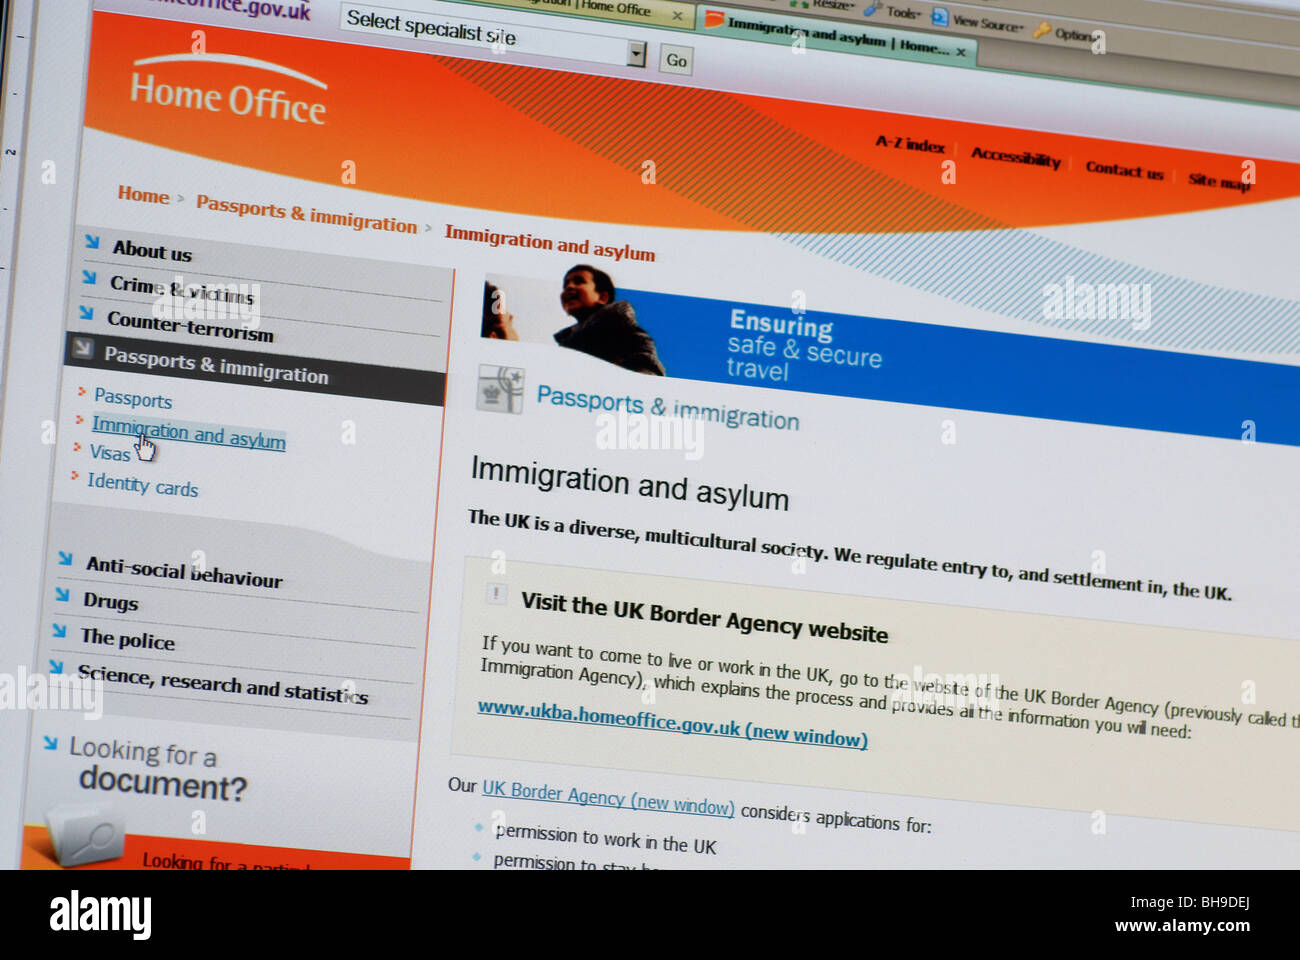 Home Office Immigration Stock Photos & Home Office Immigration Stock ...